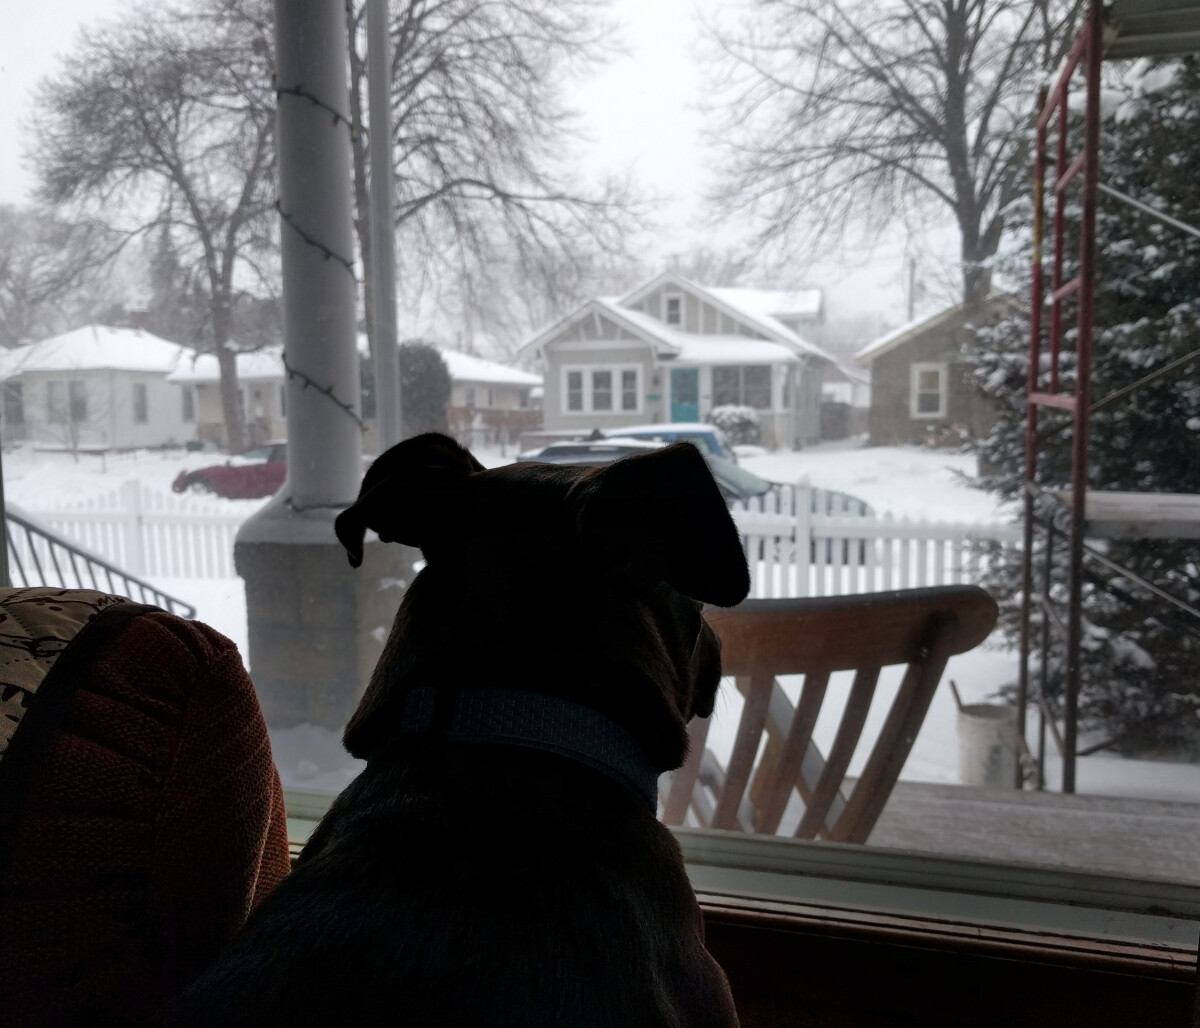 Photo of Rigby the dog watching snow outside the window with construction scaffolding in the background